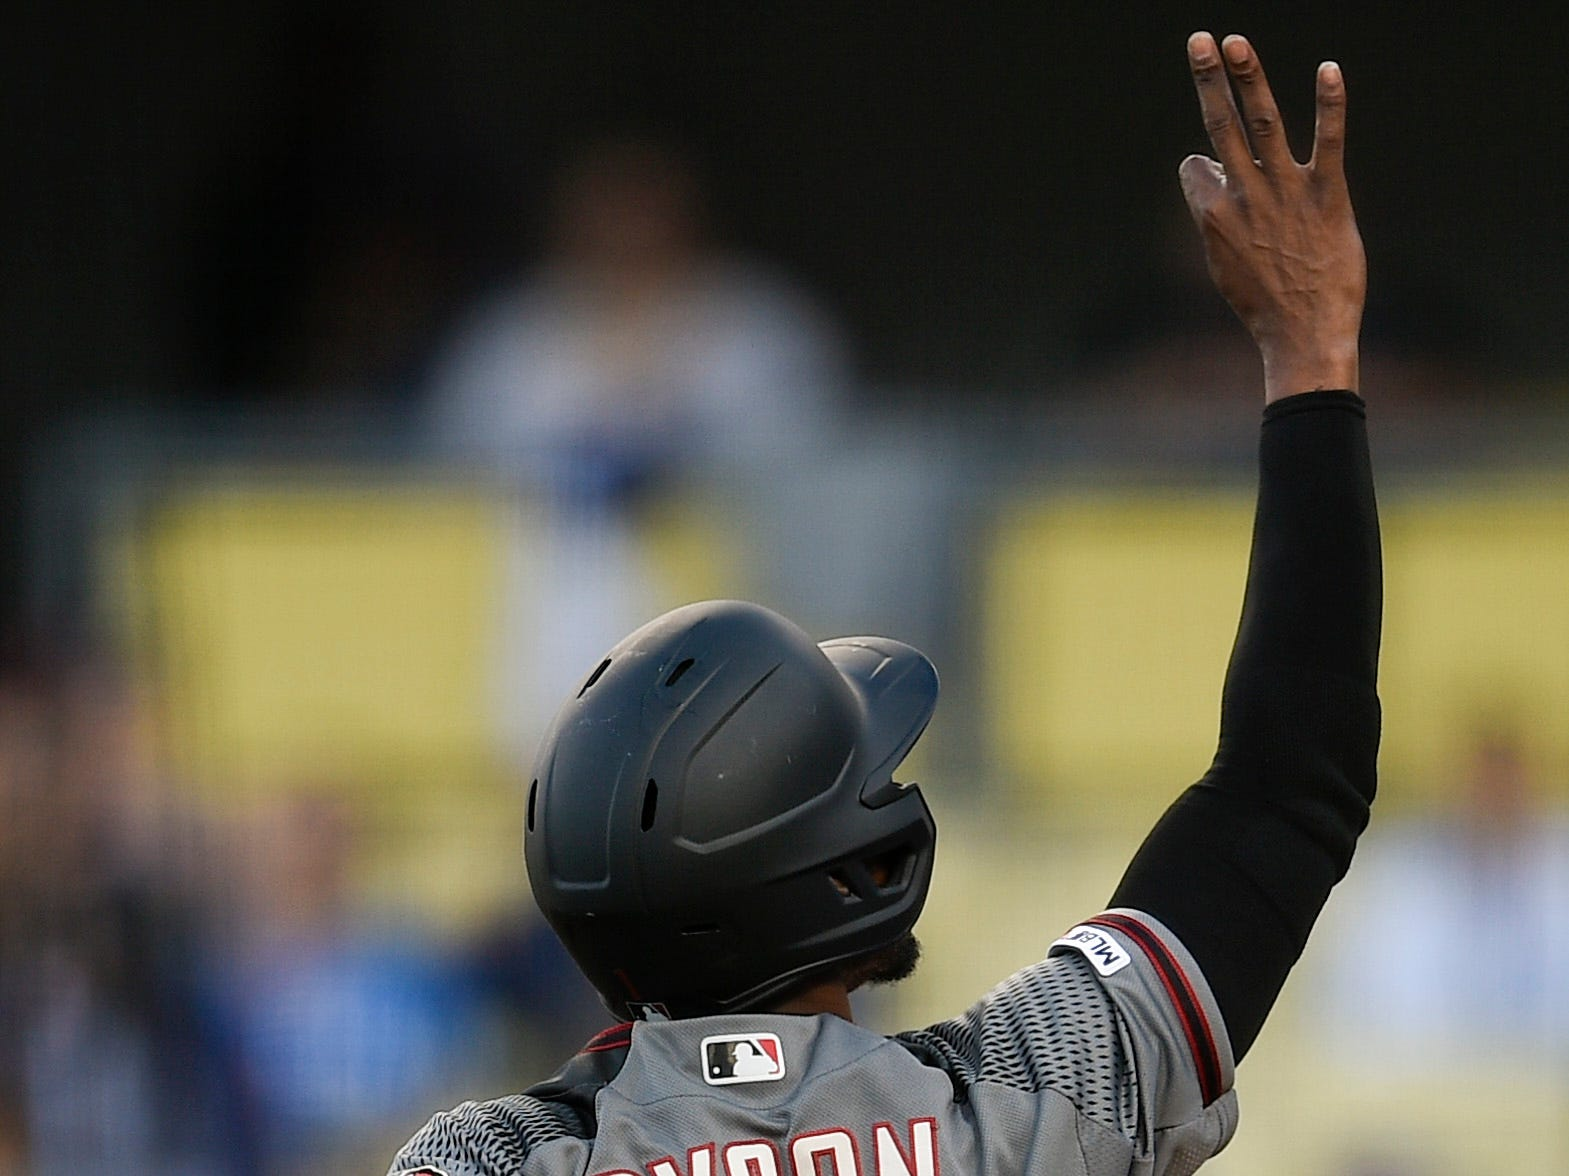 Mar 30, 2019; Los Angeles, CA, USA; Arizona Diamondbacks center fielder Jarrod Dyson (1) celebrates after a solo home run during the first inning against the Los Angeles Dodgers at Dodger Stadium. Mandatory Credit: Kelvin Kuo-USA TODAY Sports